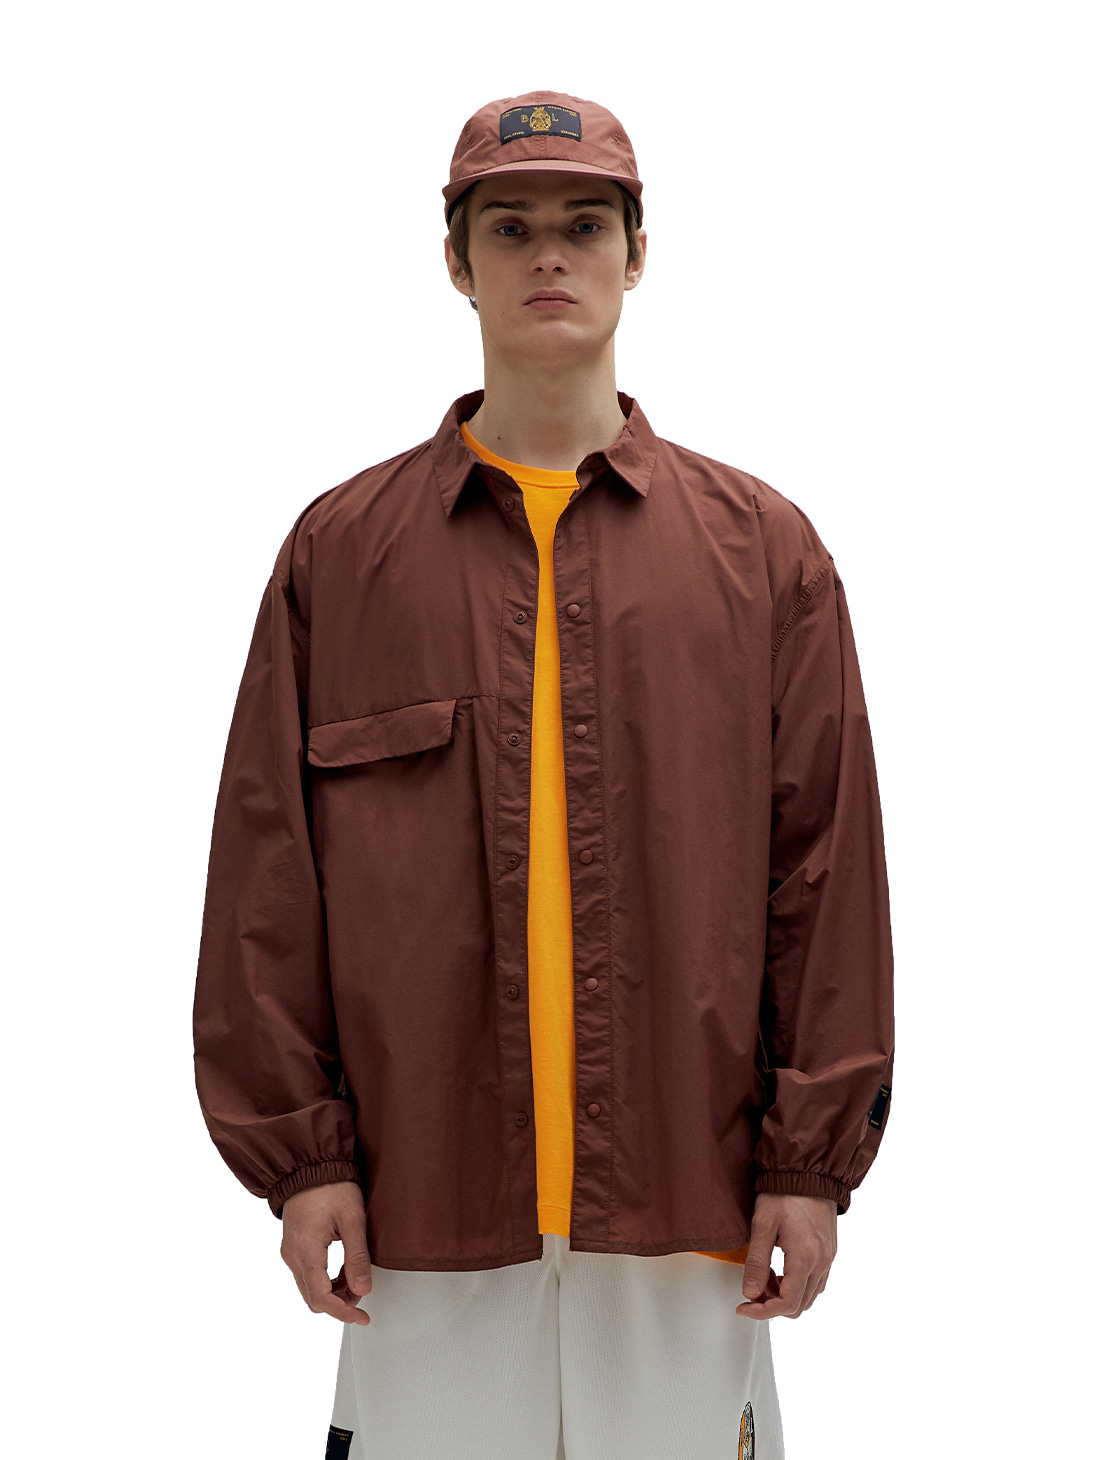 SSFC WINDBREAKER SHIRT - BROWN